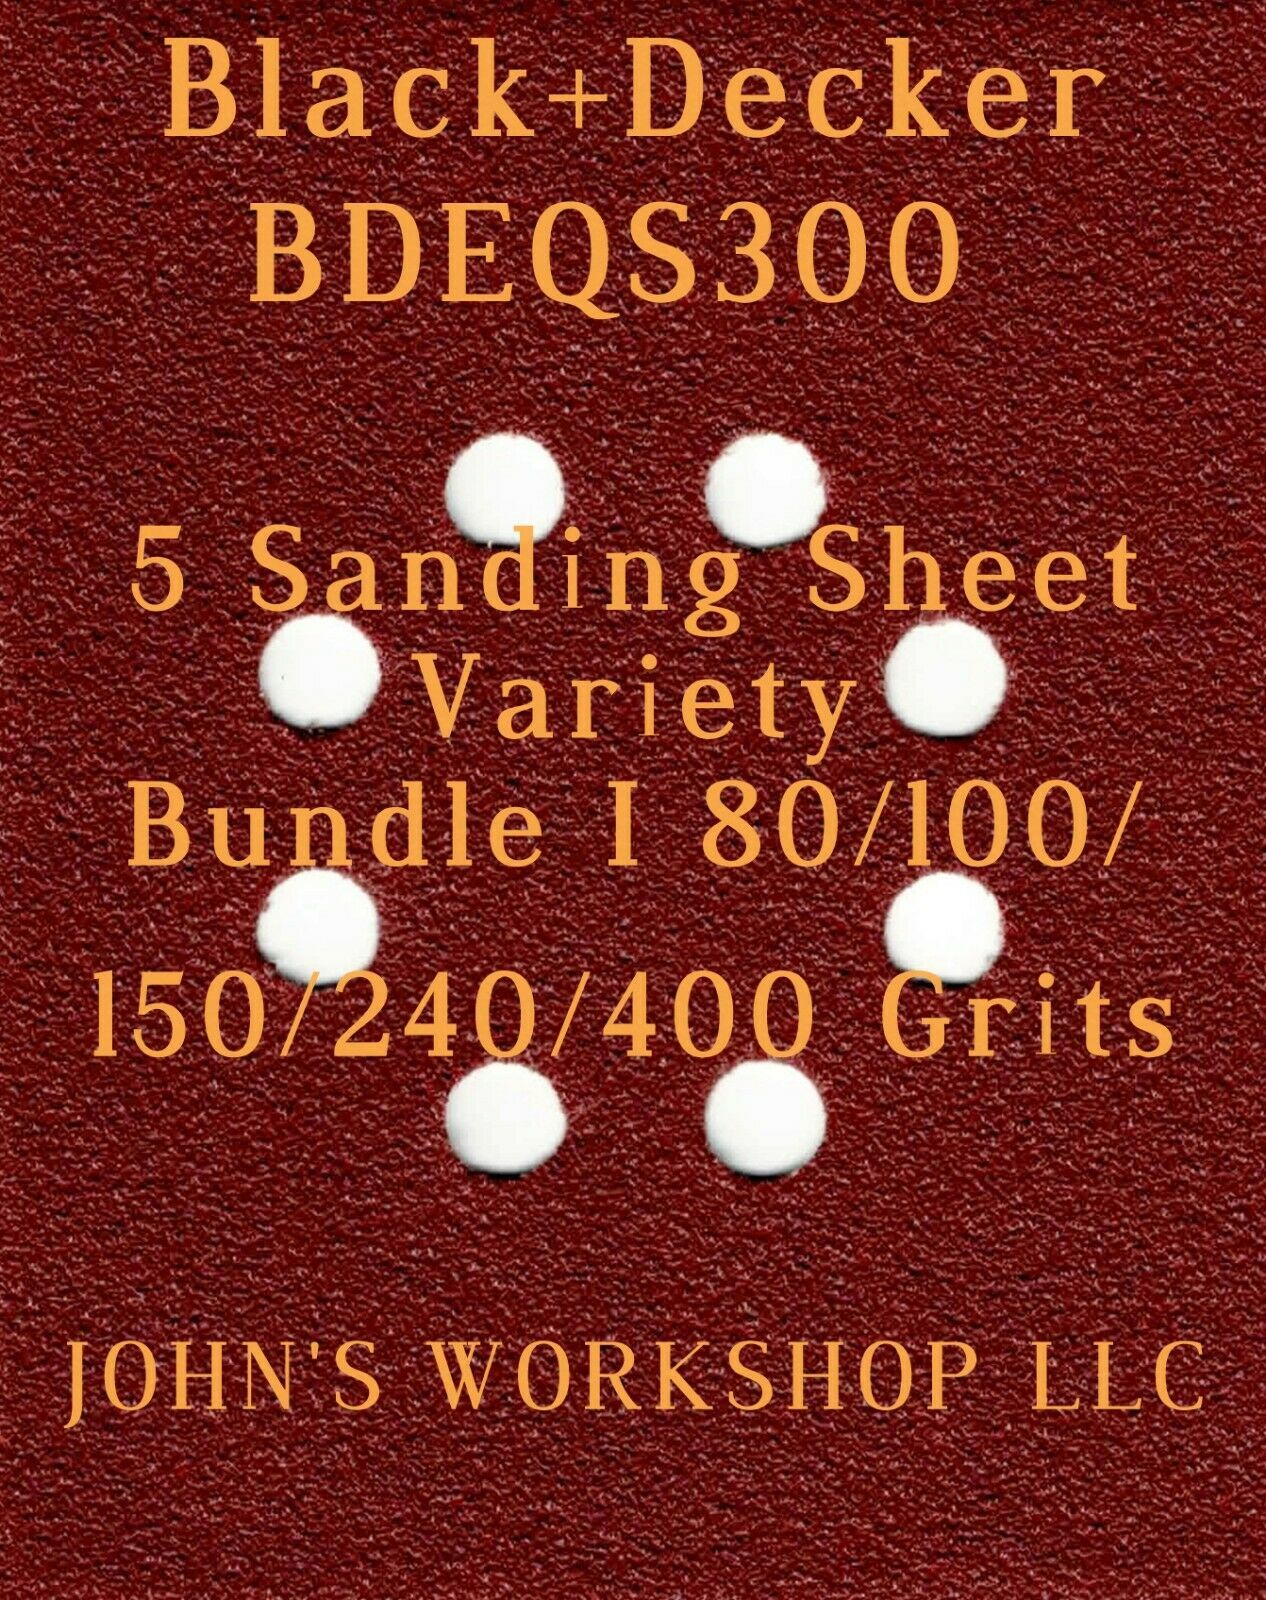 Primary image for Black+Decker BDEQS300 - 80/100/150/240/400 Grits - 5 Sandpaper Variety Bundle I